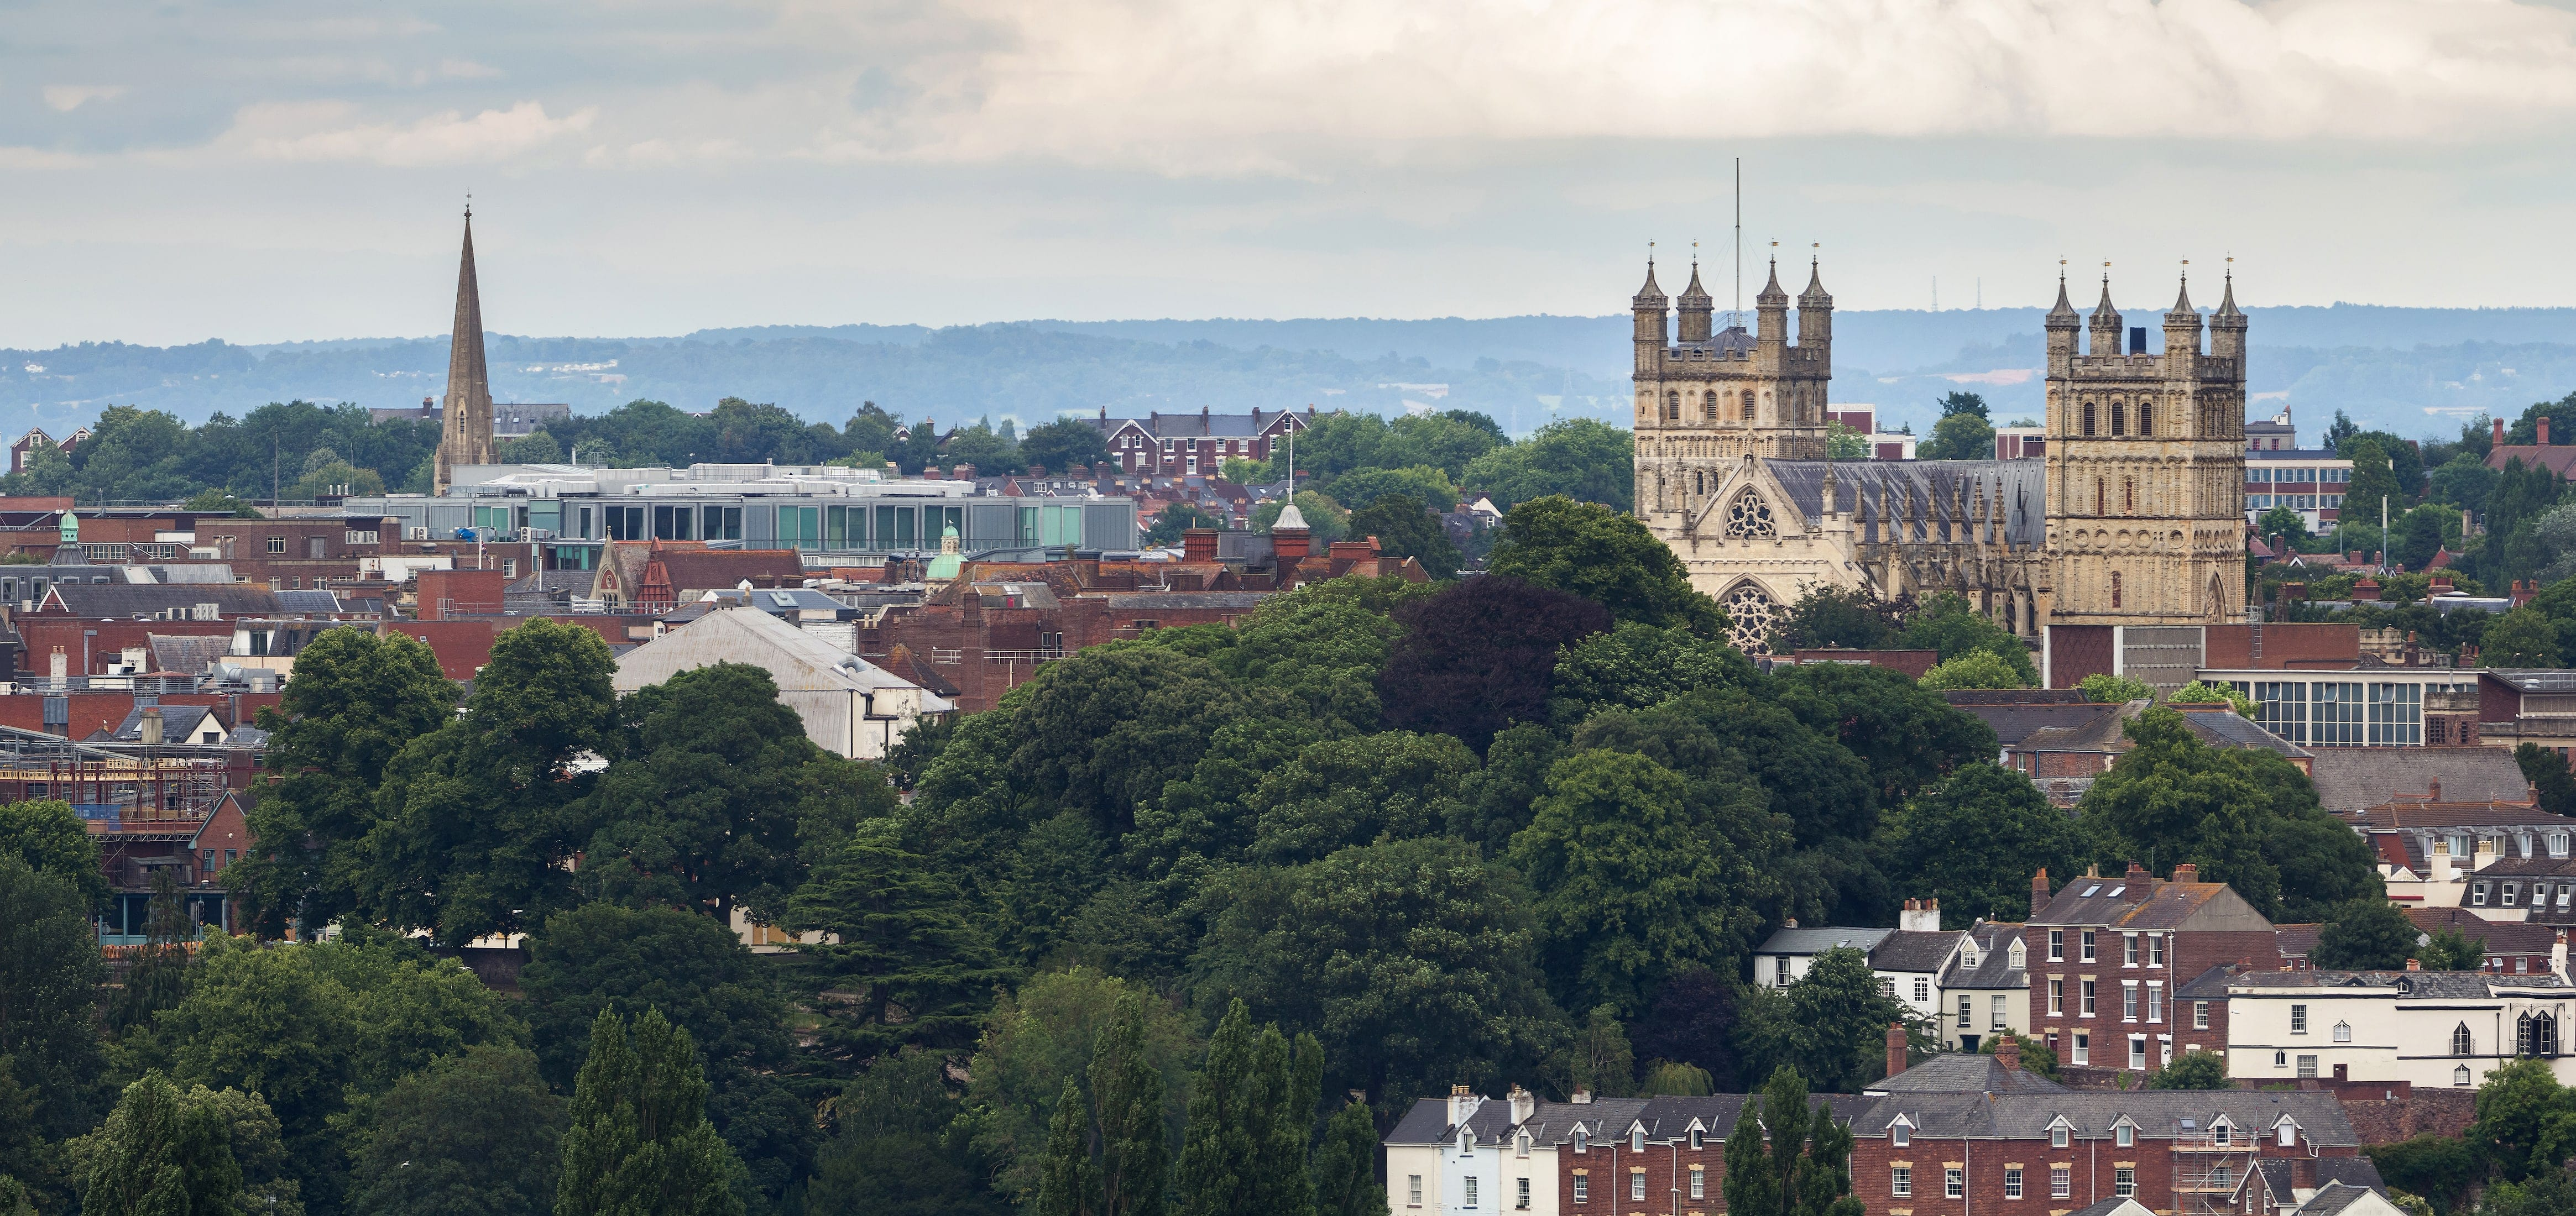 PTSG delivers specialist services at Exeter redevelopment